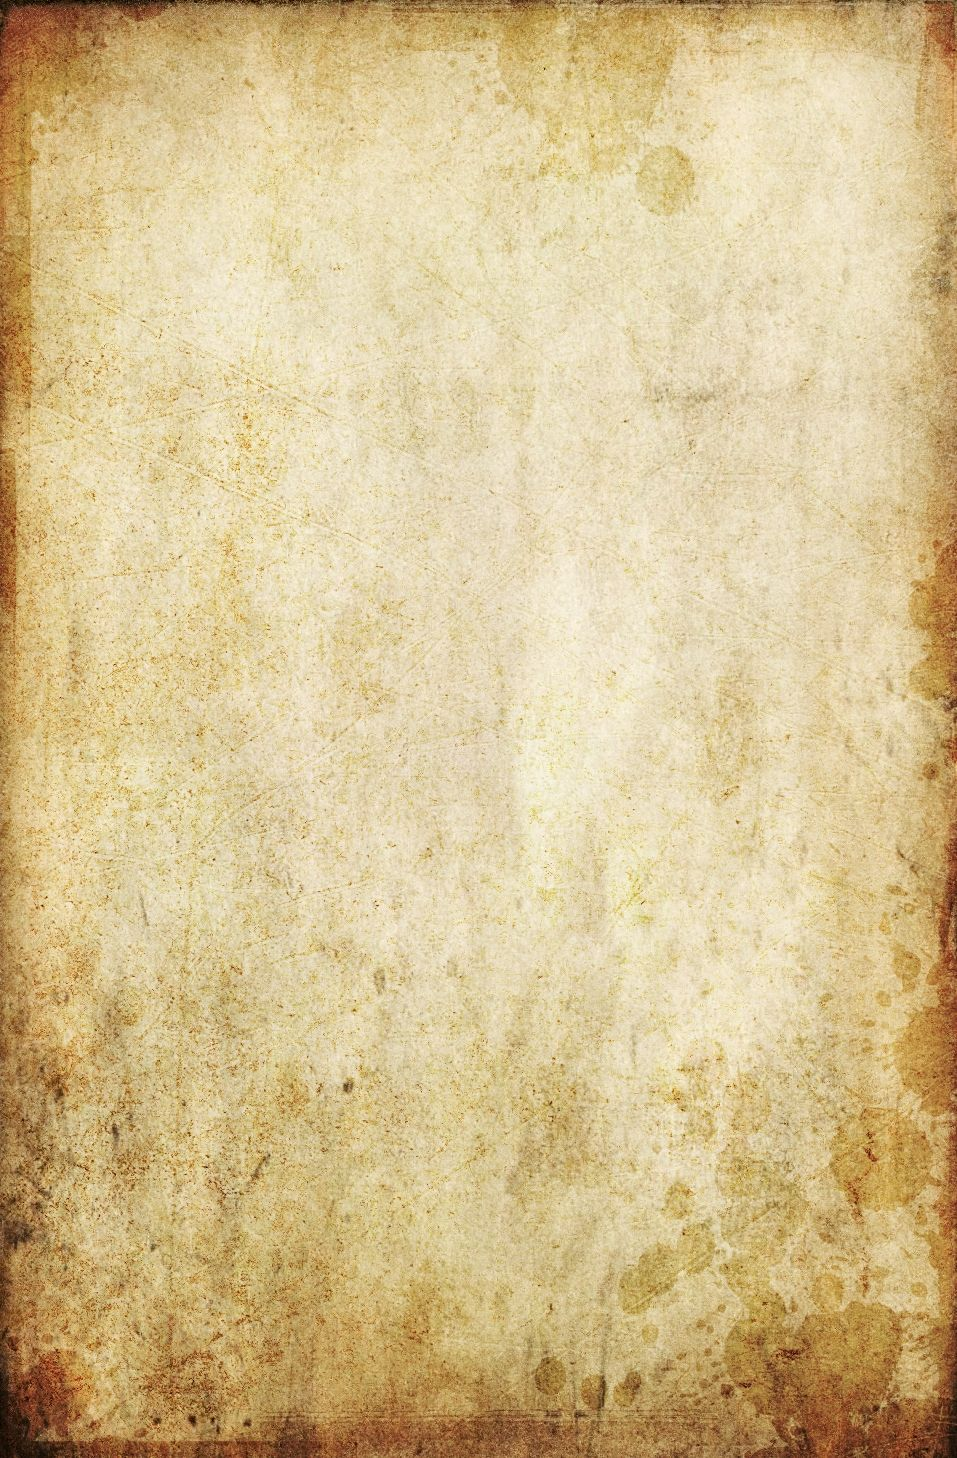 Printable paper backgrounds christmas - Best 25 Free Background Images Ideas On Pinterest Free Background Patterns Free Texture Backgrounds And Wood Background